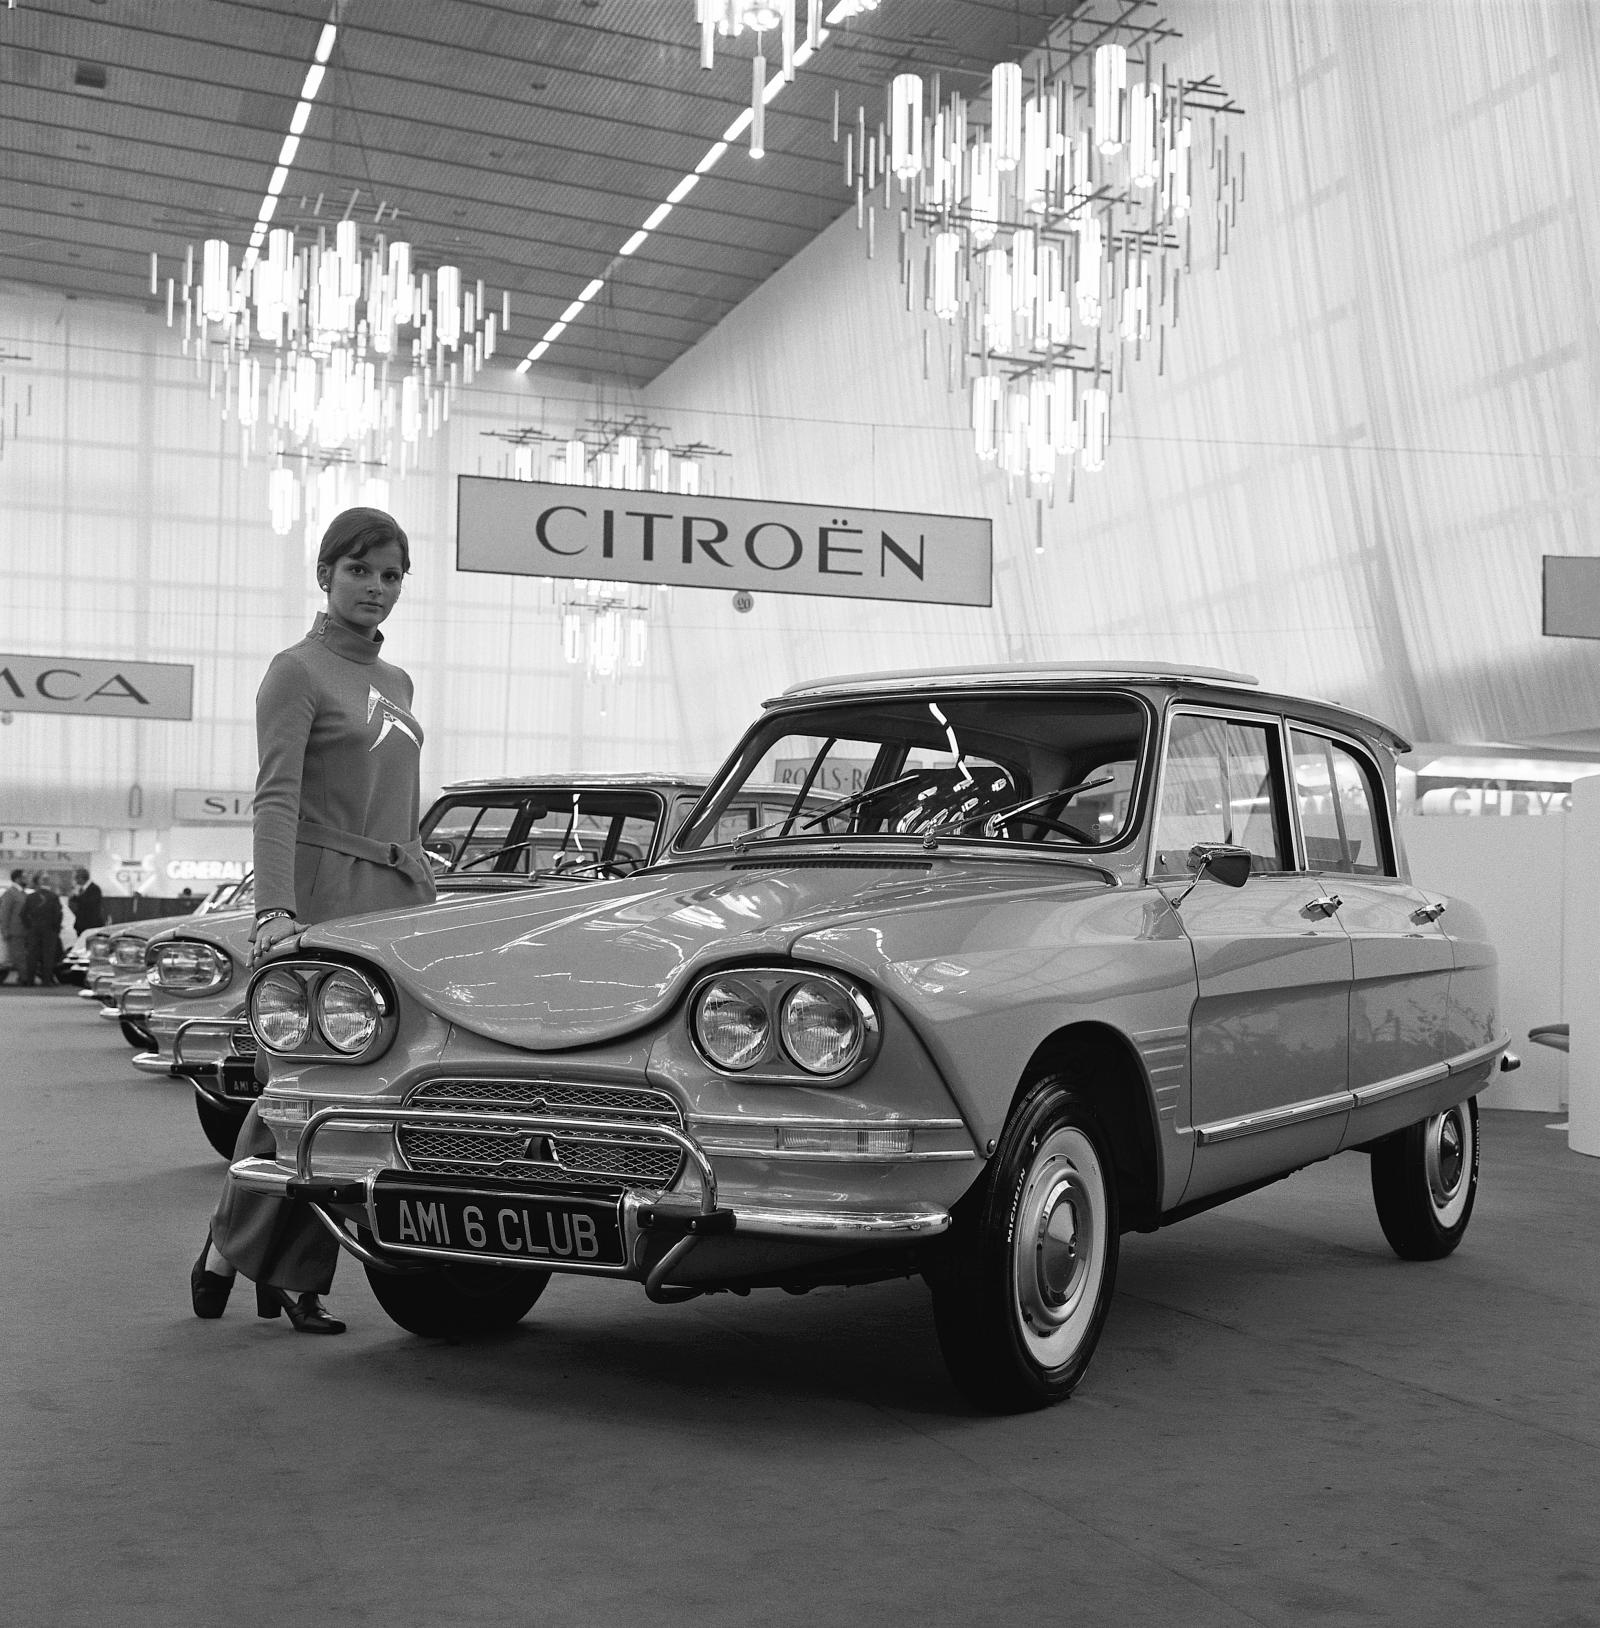 Salon de l'automobile, AMI 6 Club του 1966